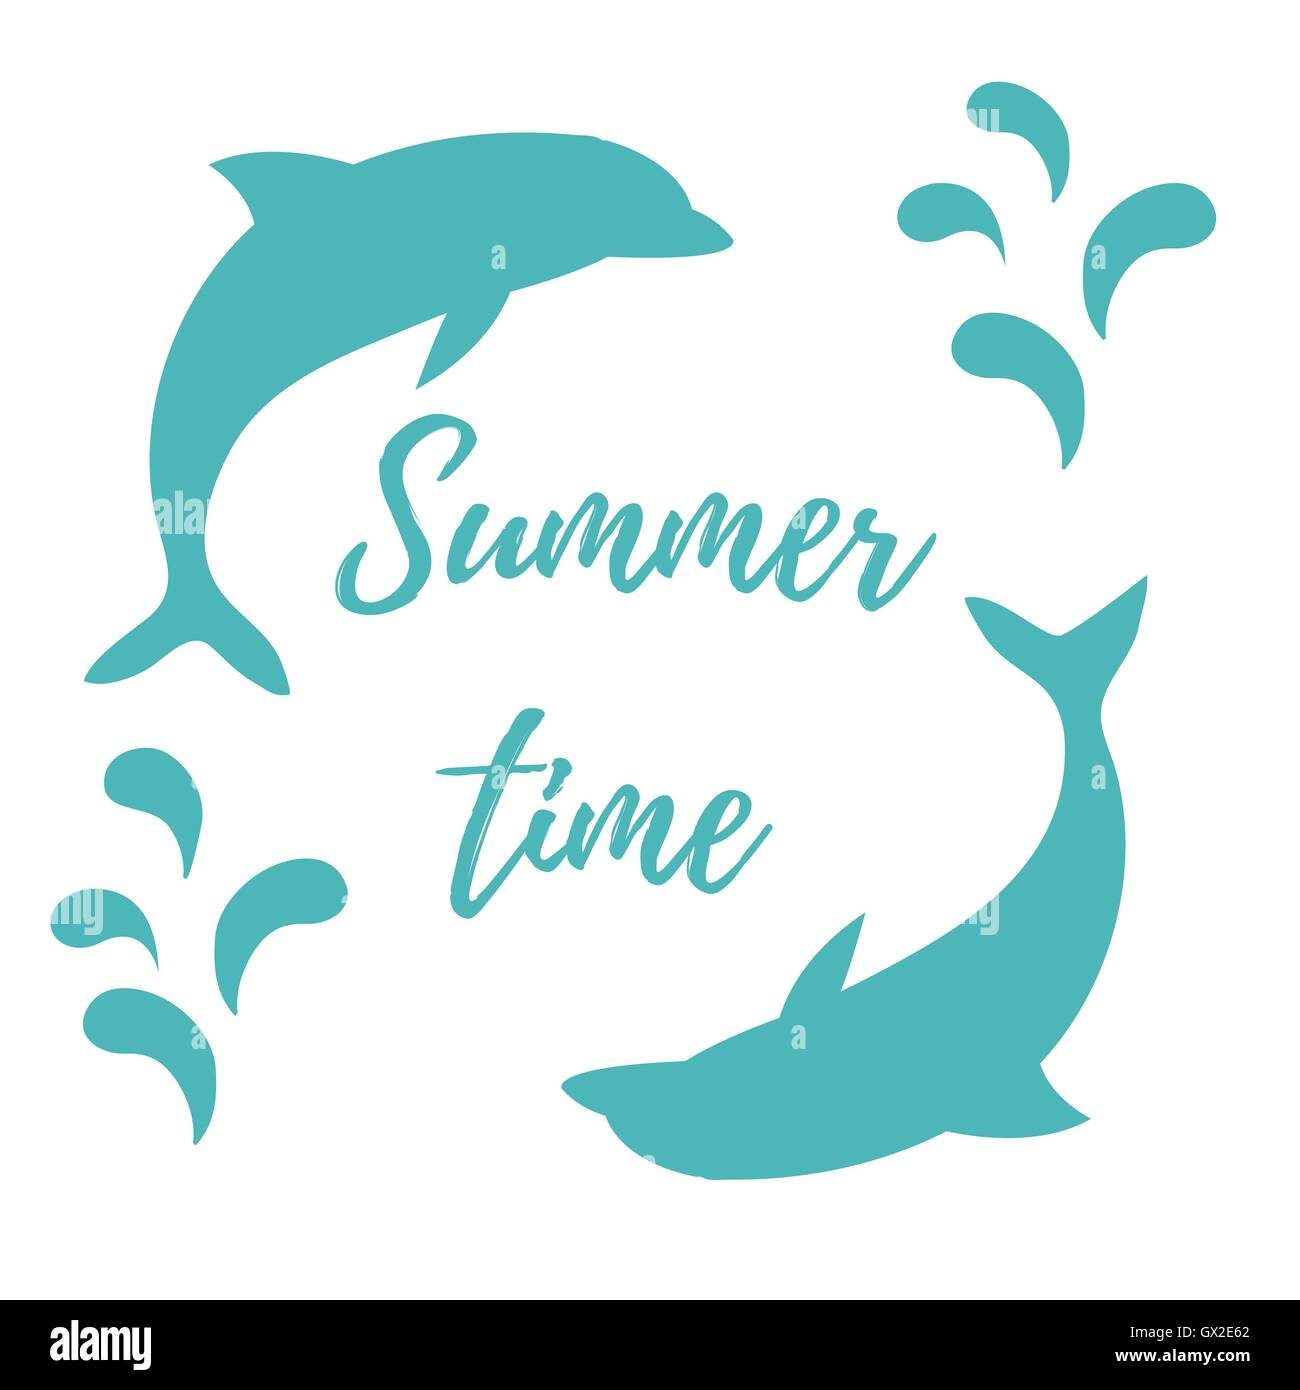 Nice picture with two colored dolphins with splashes and inscription Summer time on white background - Stock Image